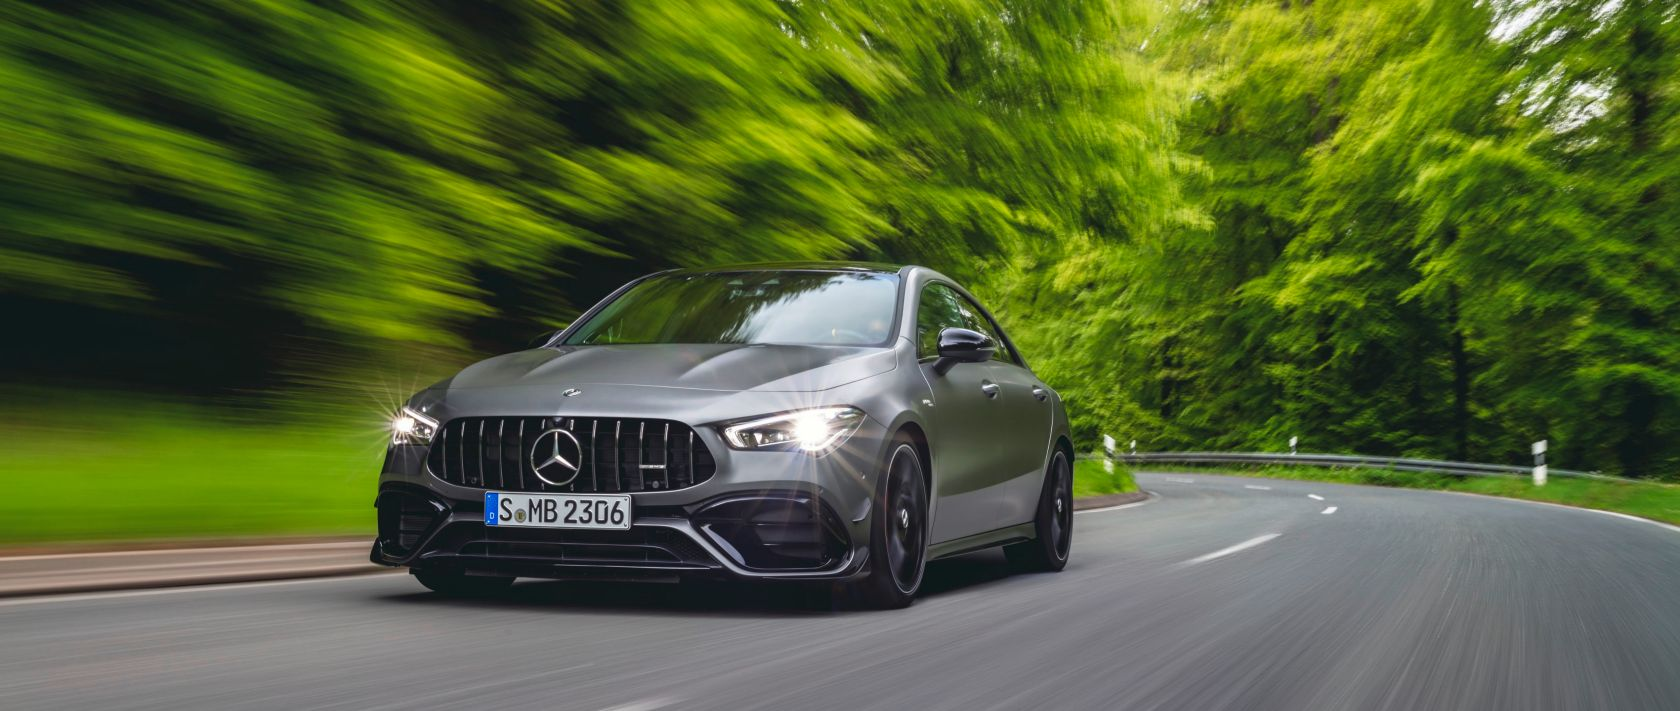 Front view of the new 2020 Mercedes-AMG CLA 45 S 4MATIC+ Coupé (C 118) in design mountain grey magno.